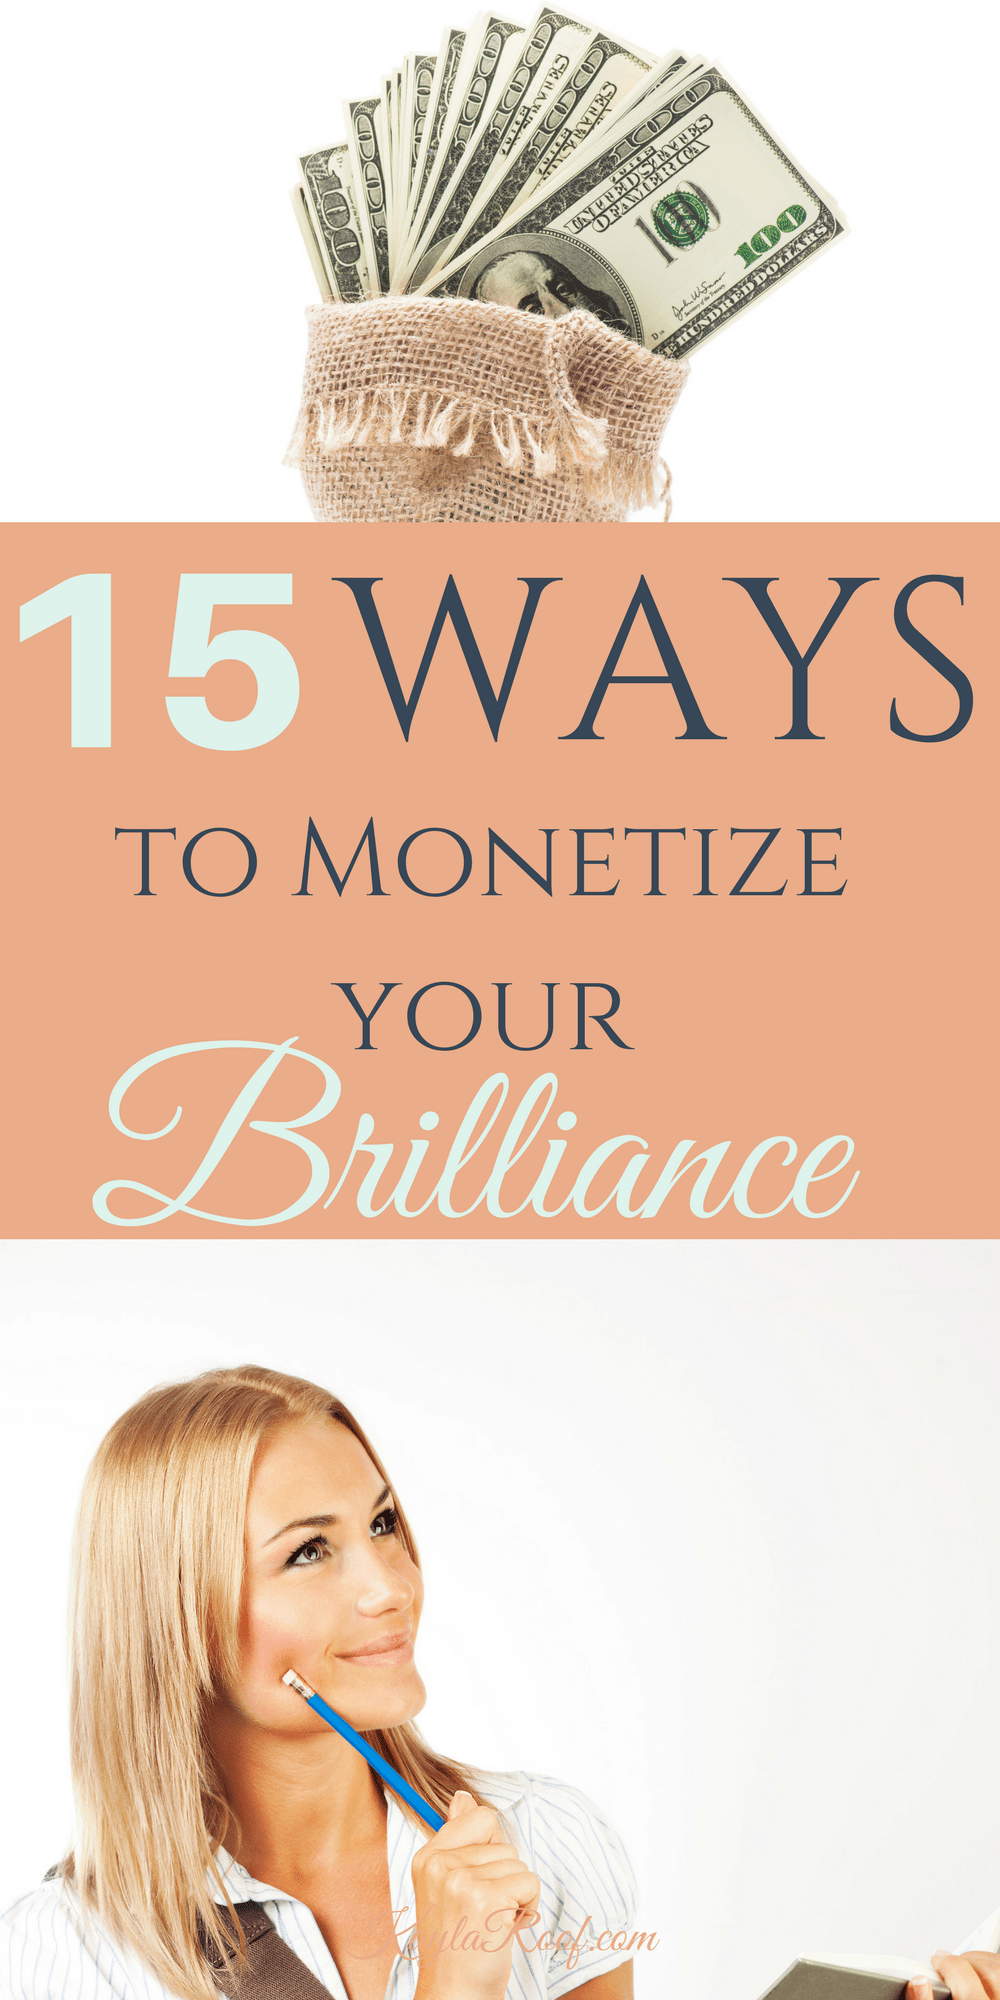 15 Ways to Monetize Your Brilliance | KaylaRoof.com